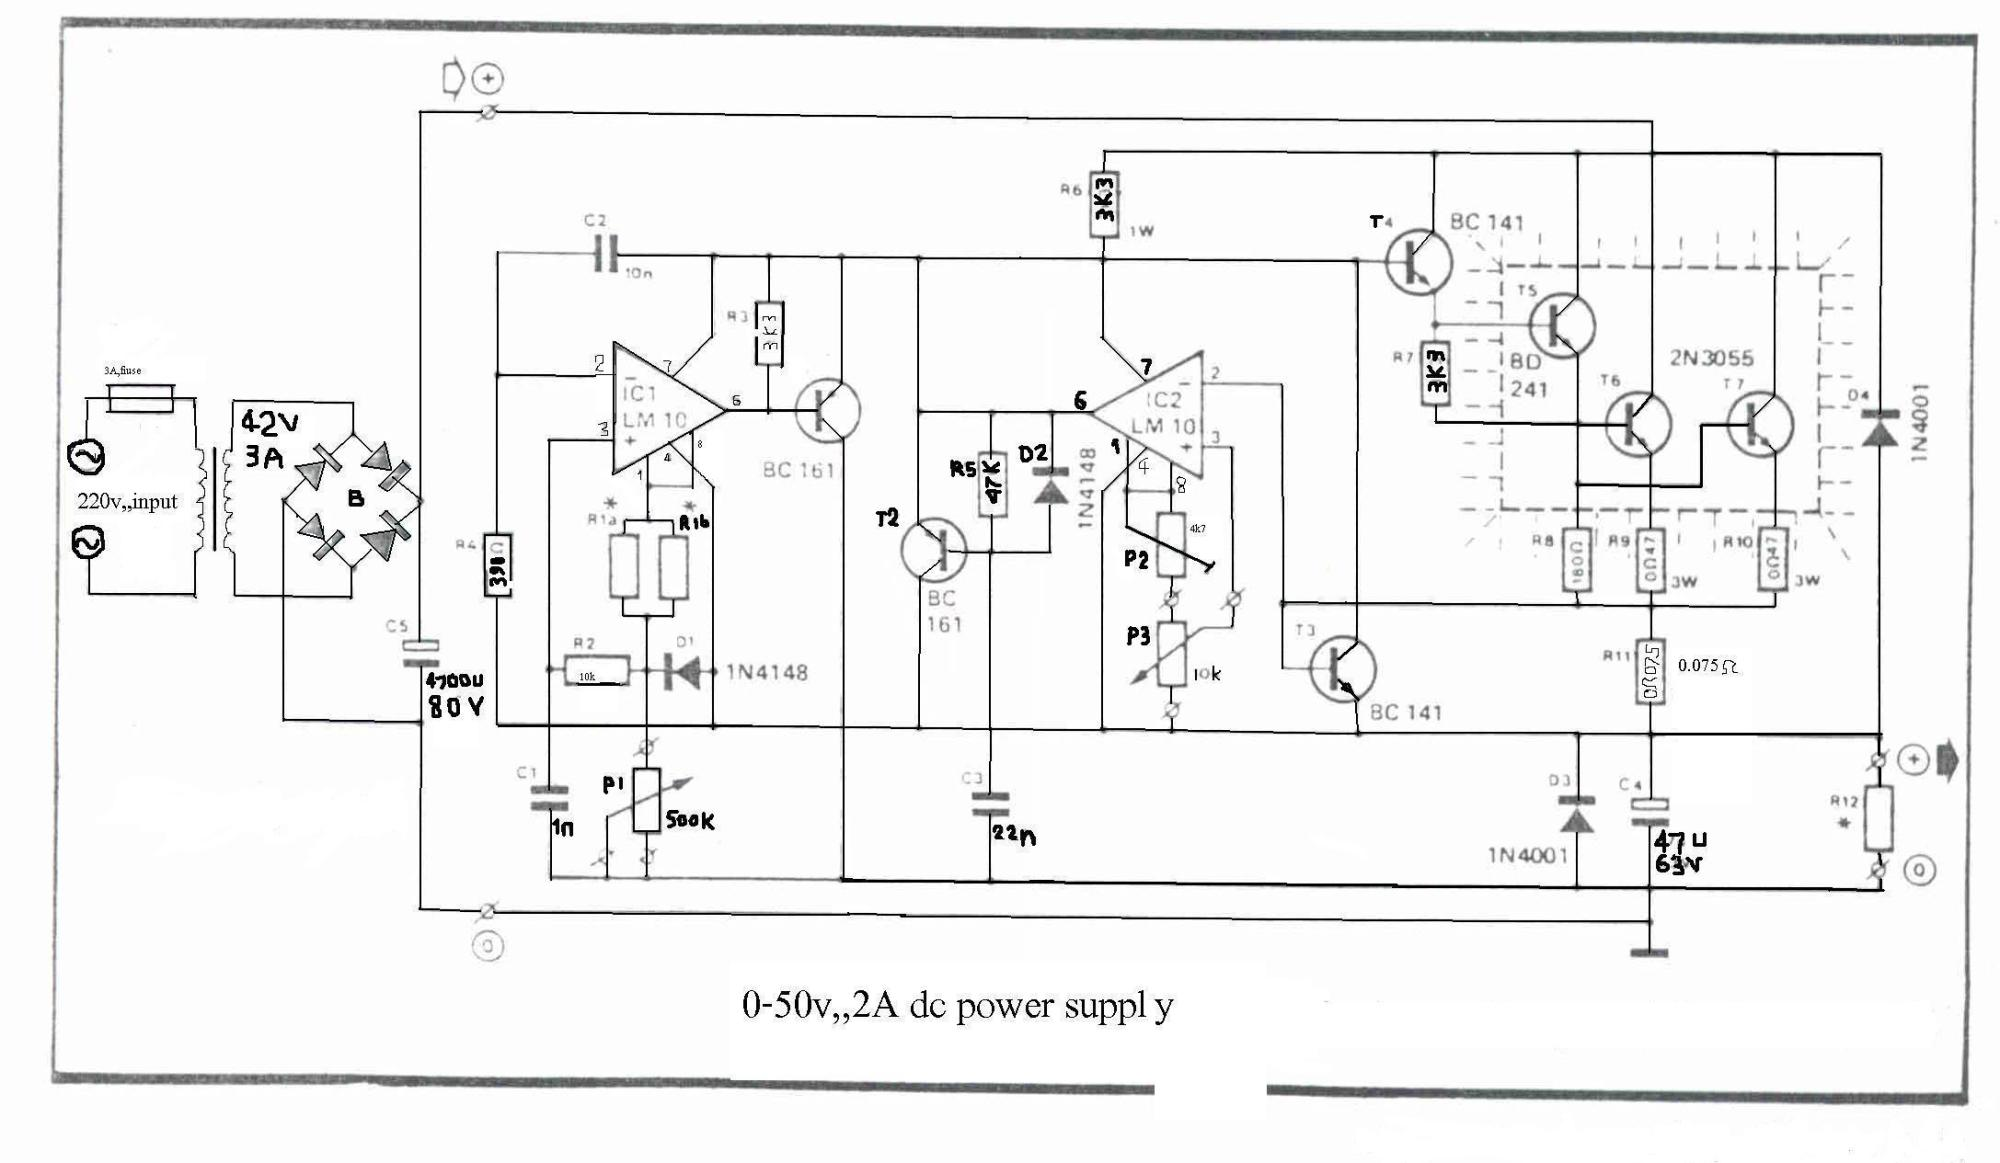 hight resolution of 0 50v 2a bench power supply circuit diagram